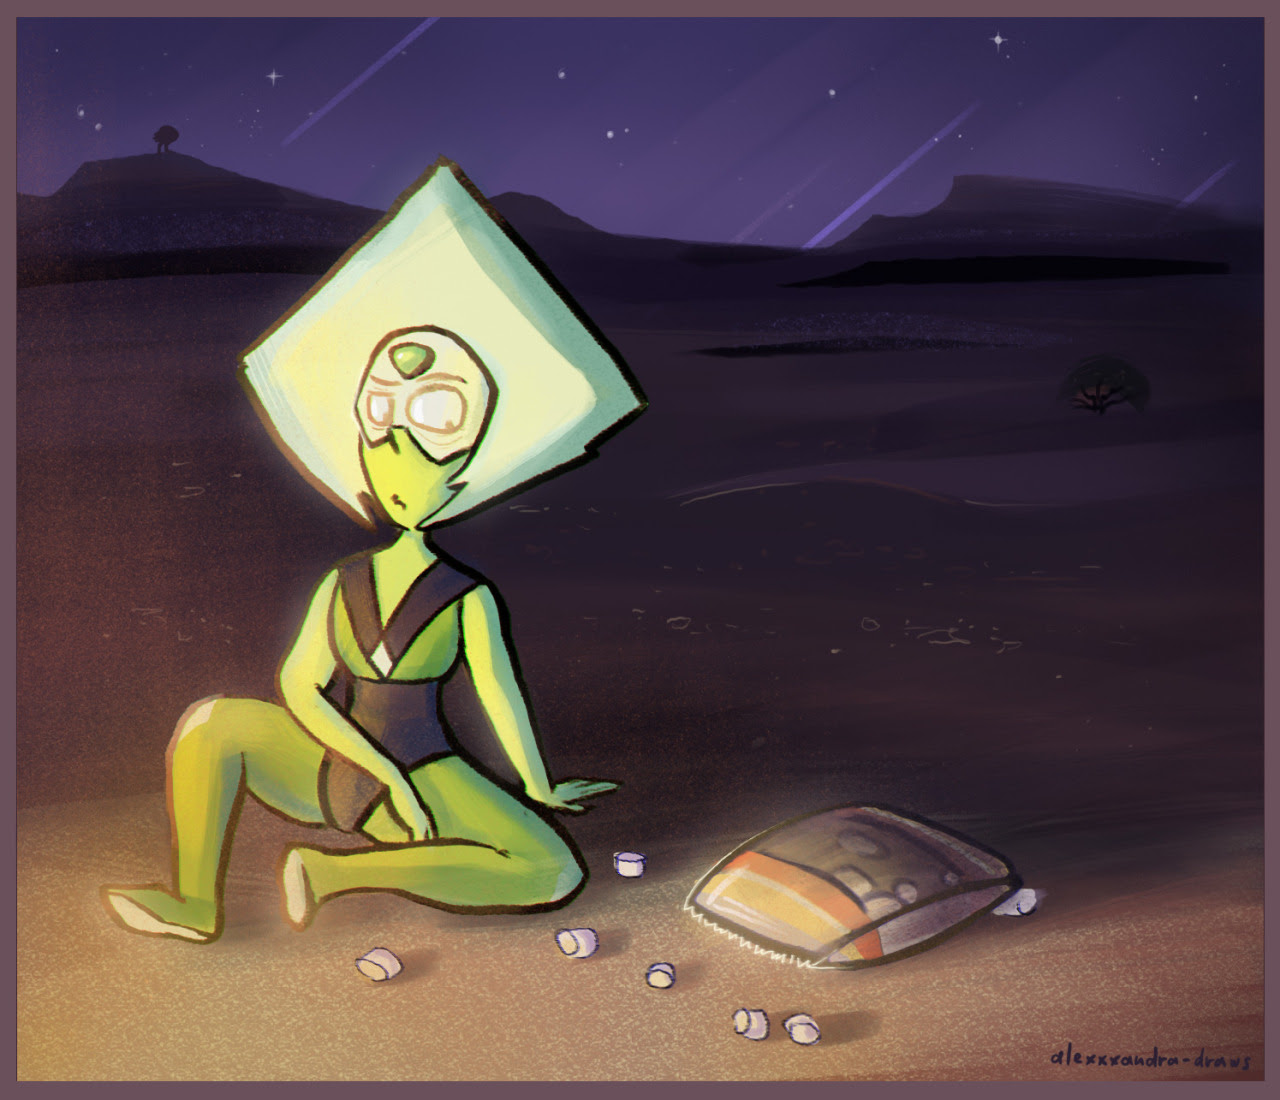 ..This is life for you now - endless suffering!.. *Peridot gets enraged after being attacked by a swarm of marshmallows flying at her while monster watches her form distance*